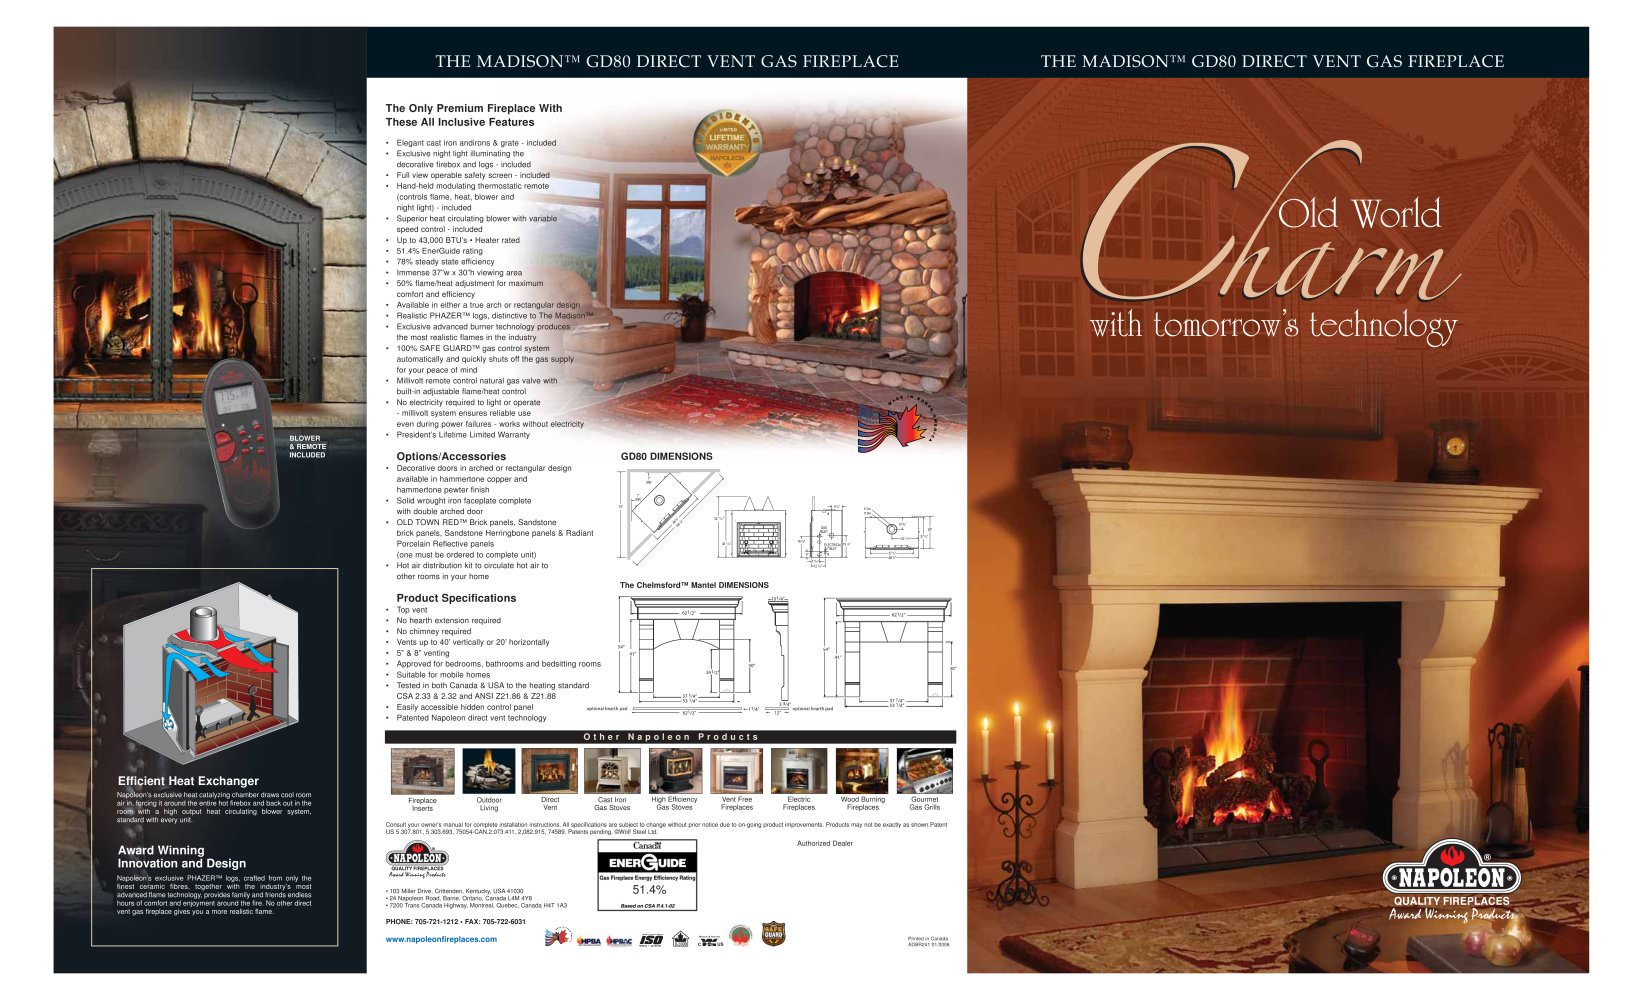 fireplace c a fireplaces anywhere products you gas almost traditional in regency how en your enjoy vent learn can home direct